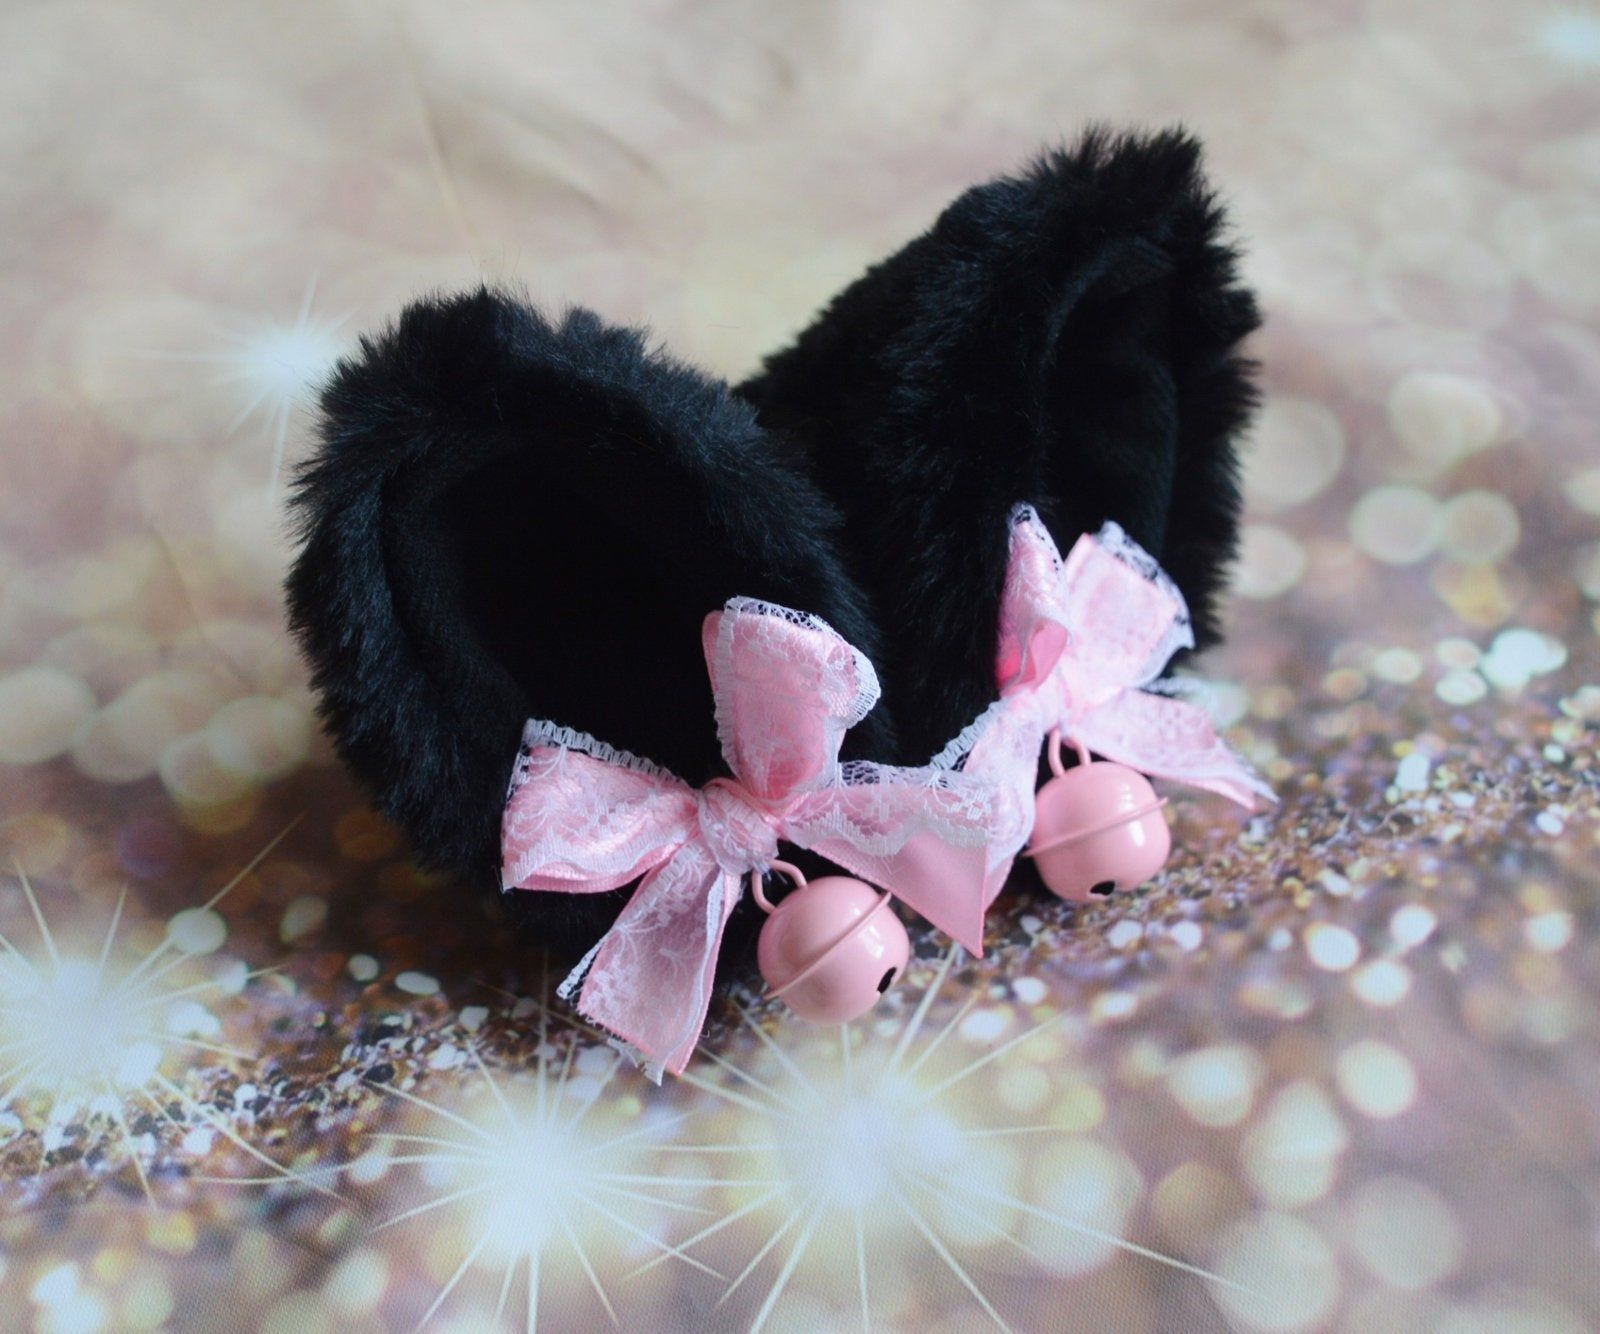 Made To Order Kitten Play Clip On Cat Ears With Ribbon Bows Etsy In 2020 Kitten Play Gear Kittens Playing Kitten Costumes